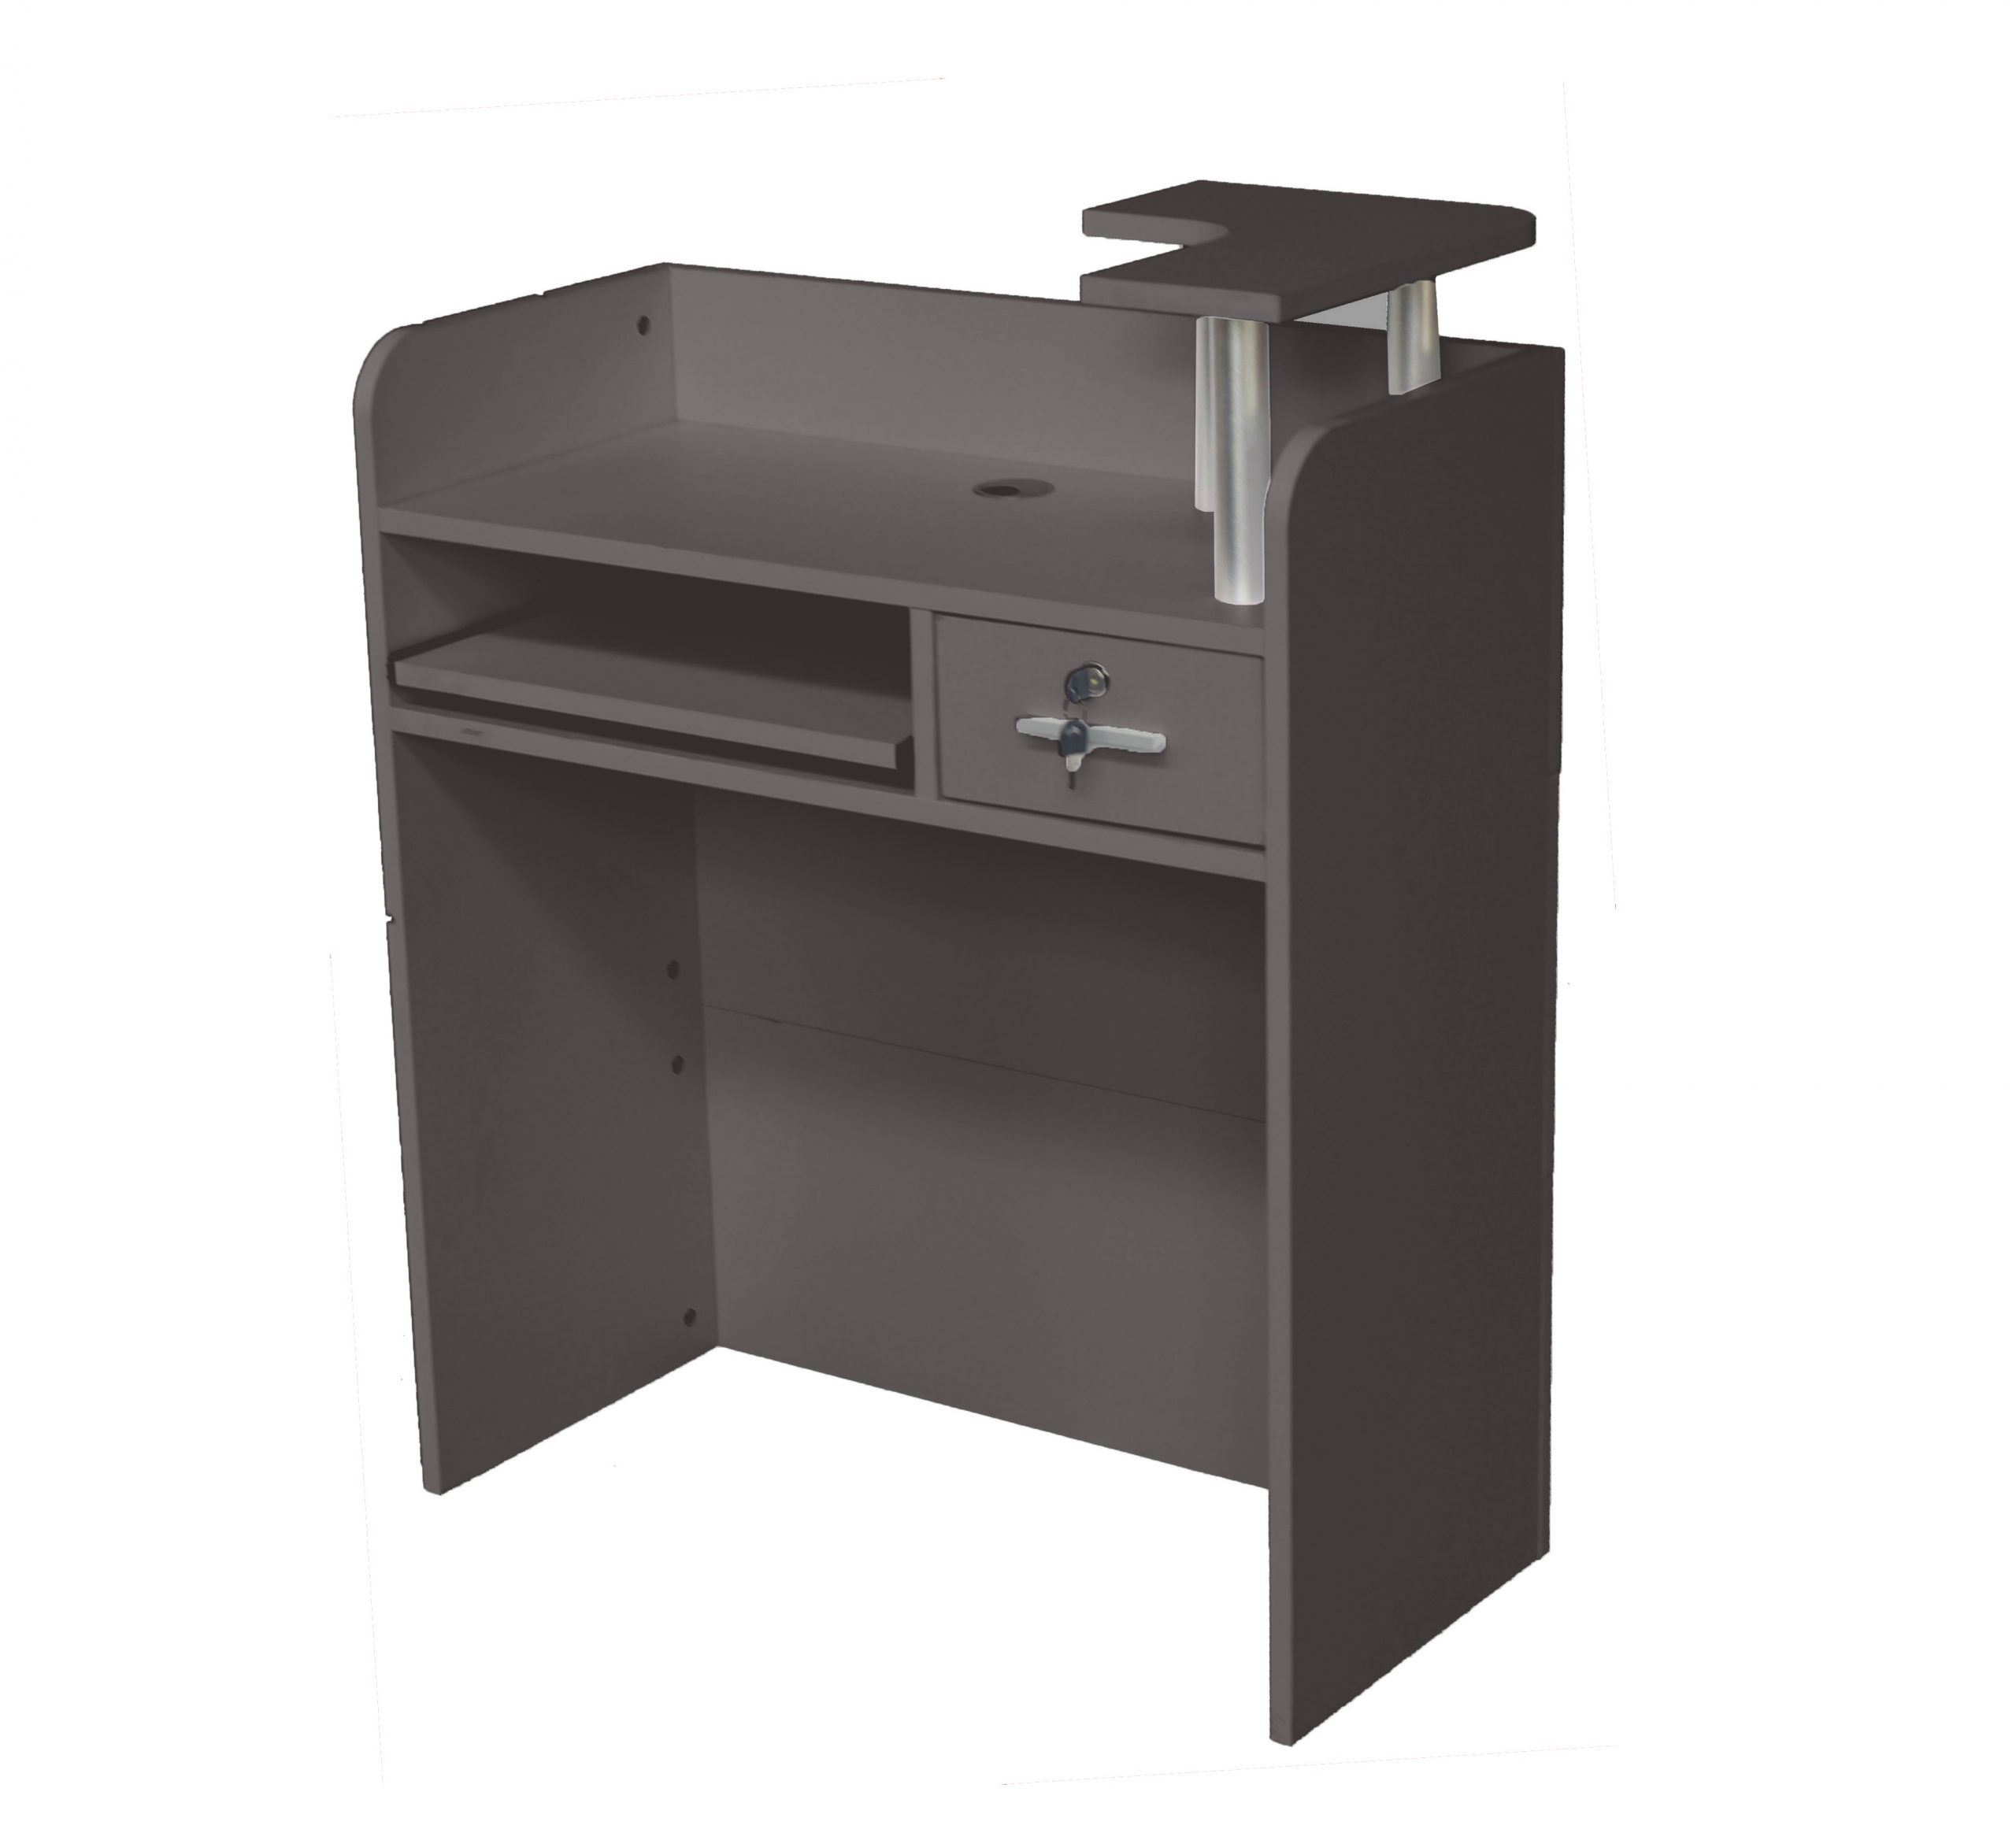 Brand New 80cm Small Charcoal Grey Compact Reception Desk Counter For Retail Shops